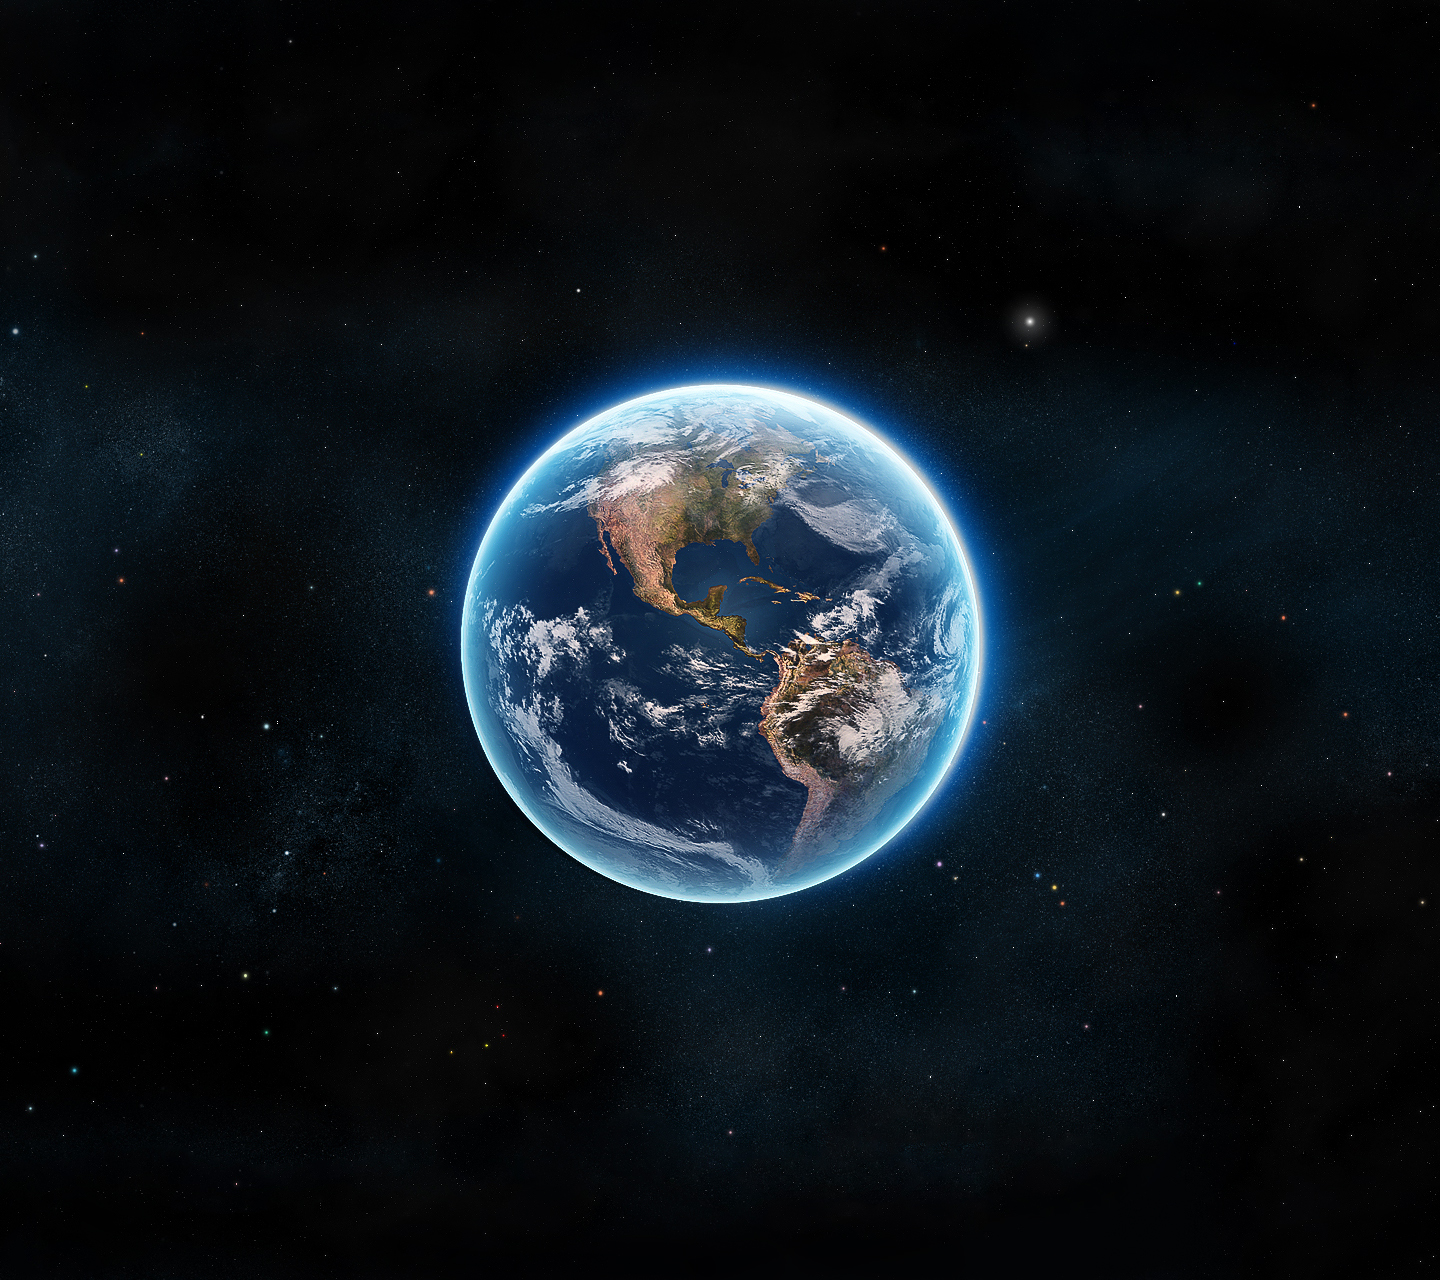 EARTH WALLPAPER 9436844    Download free wallpapers for your android     EARTH WALLPAPER 9436844